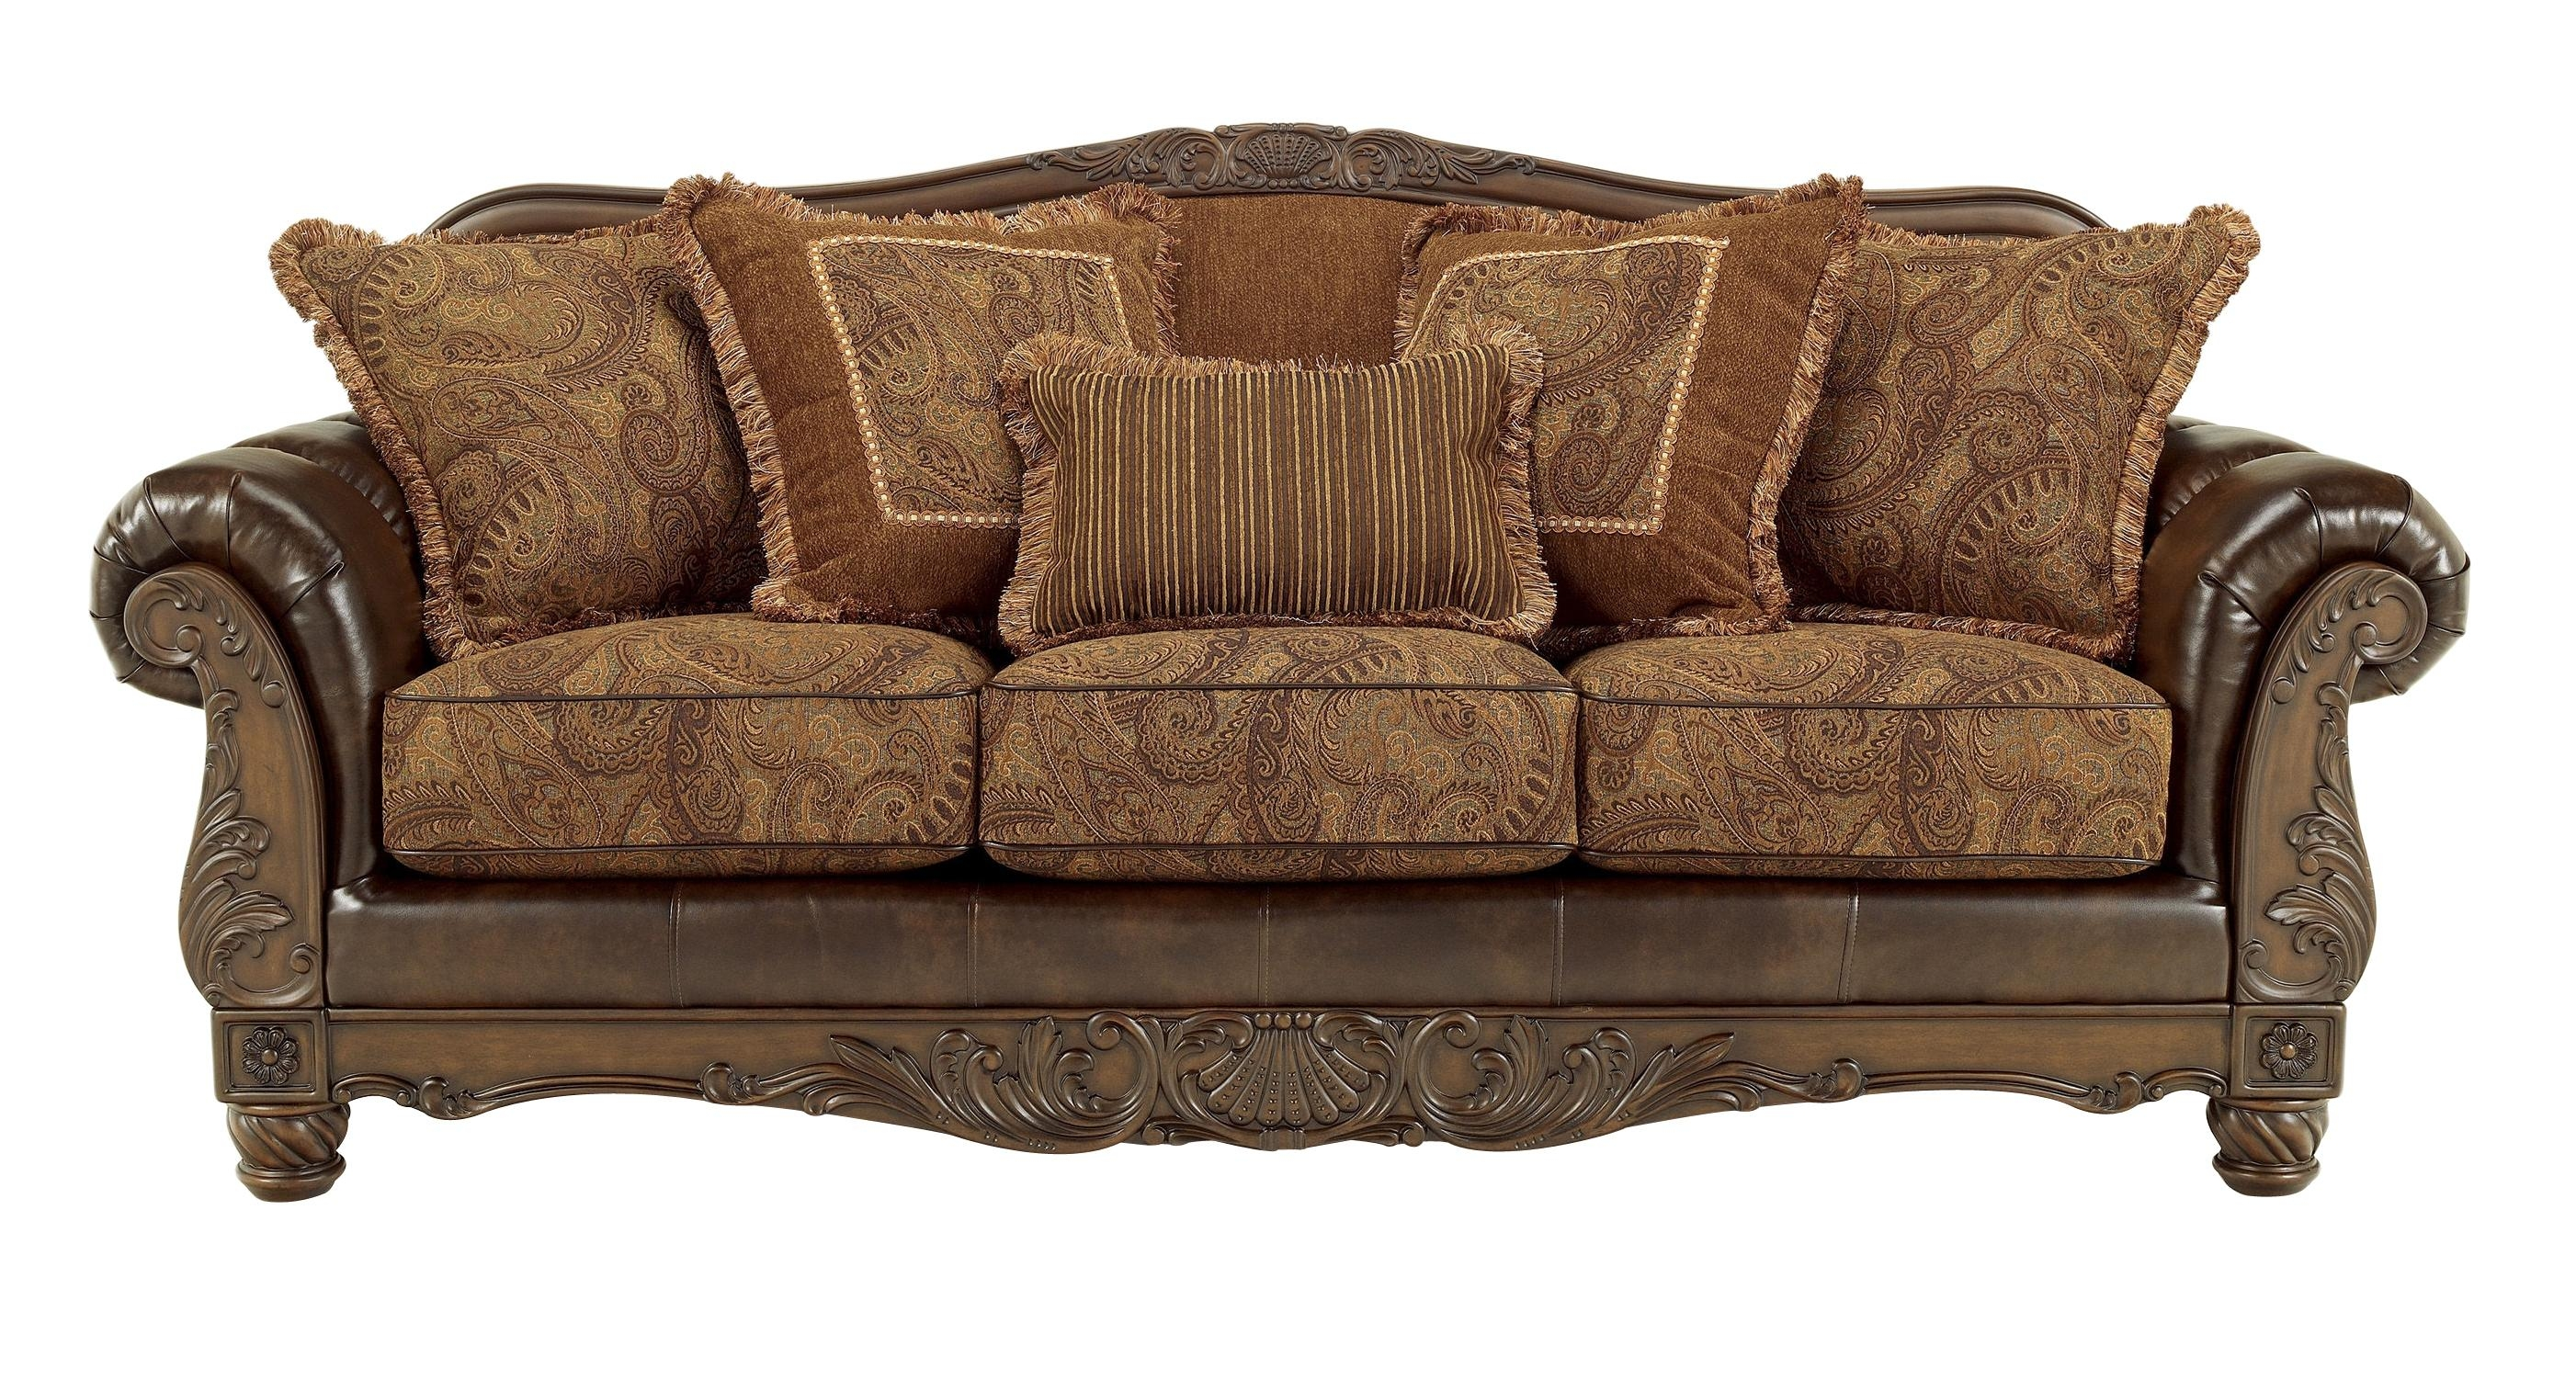 fresco antique durablend upholstery sofa red bed chair sofas and chairs vintage set rooms thesofa